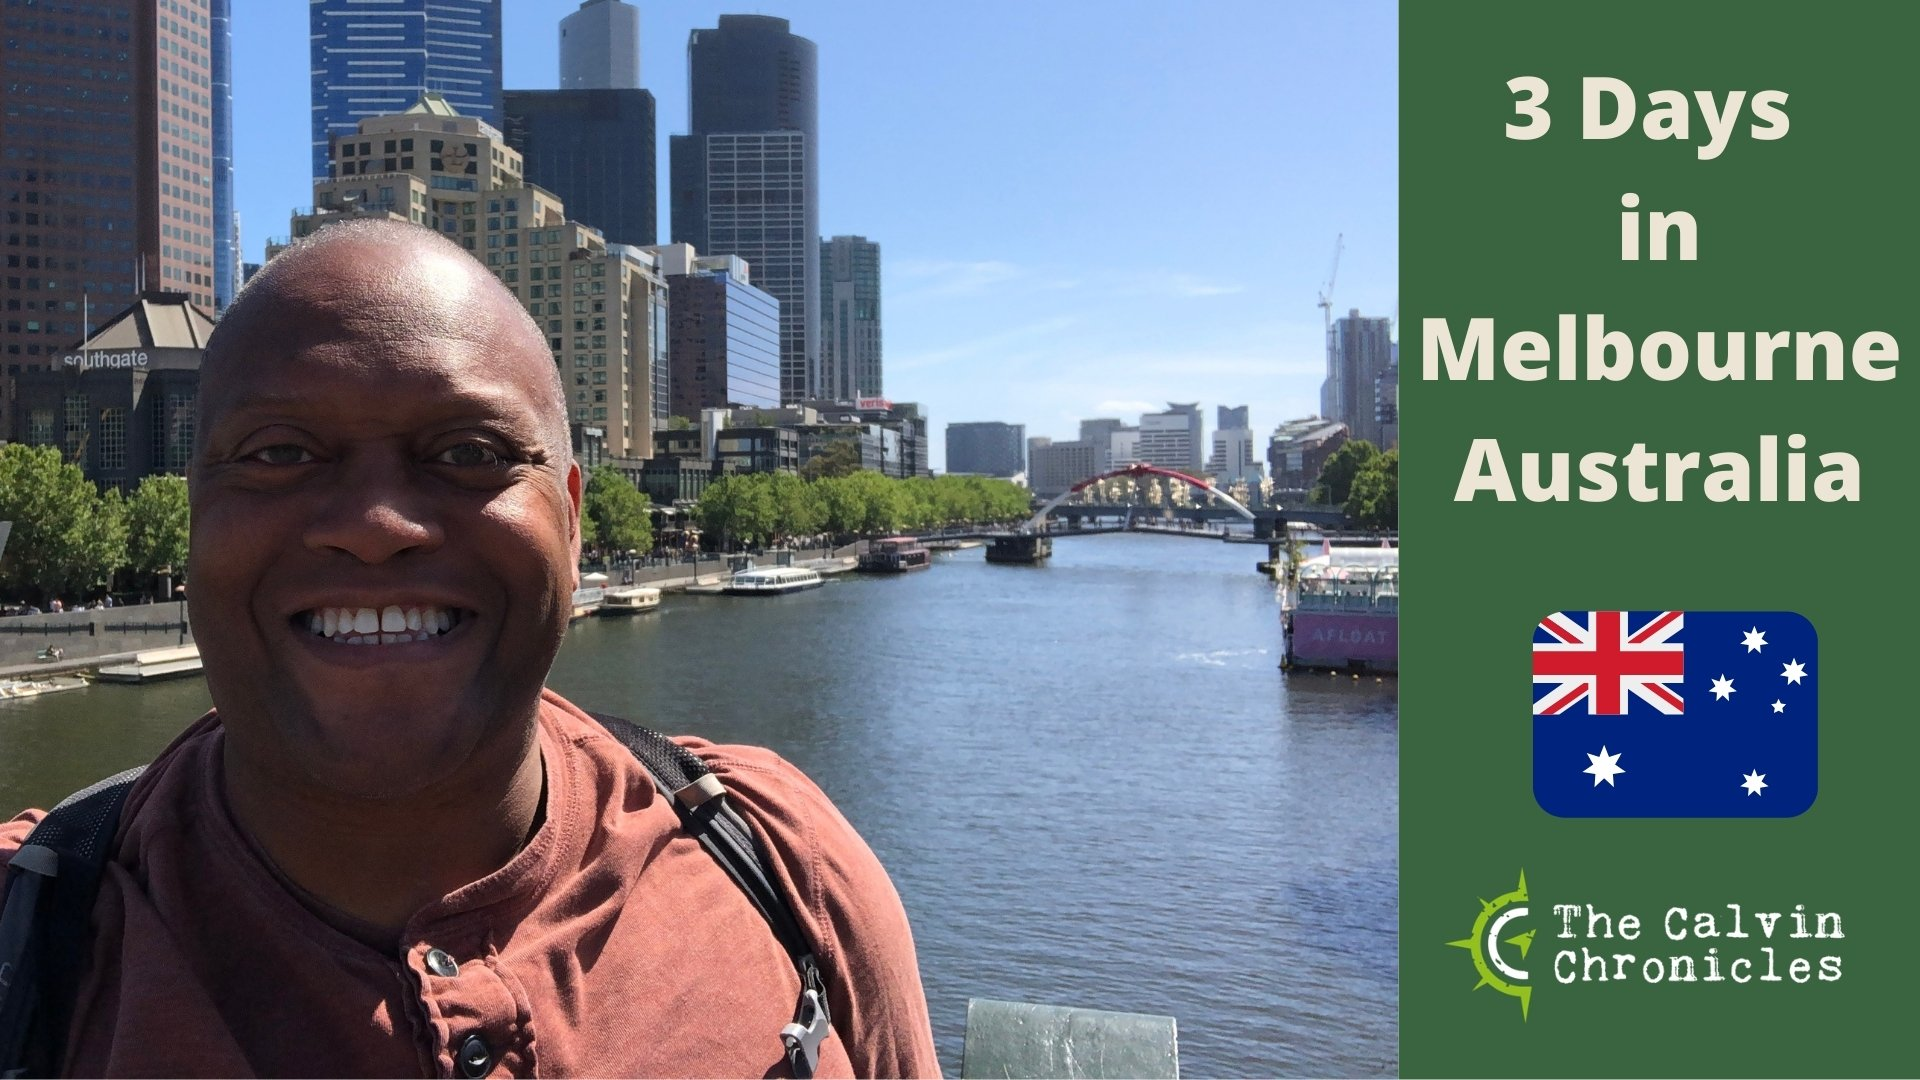 3 Days in Melbourne Australia | Museums | World War II Sites